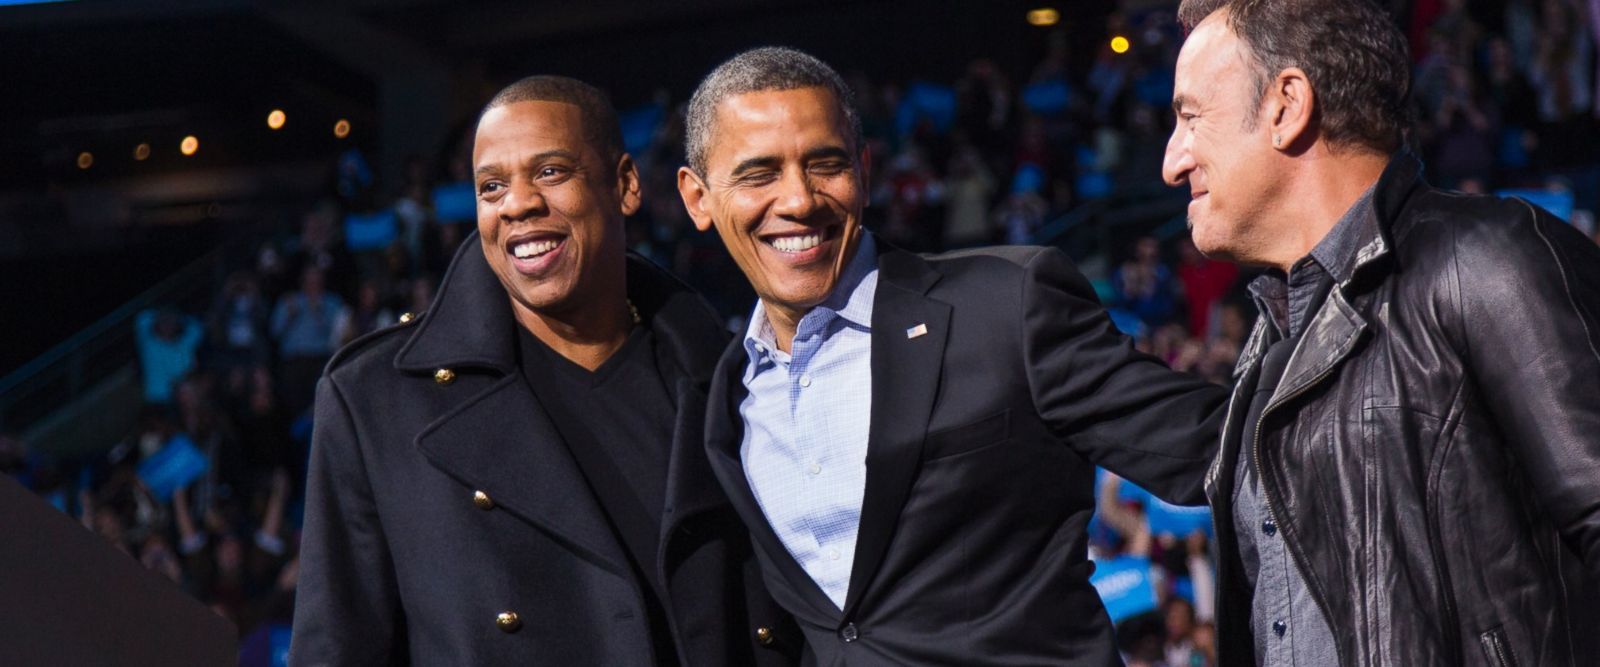 PHOTO: Barack Obama stands on stage with rapper Jay-Z and musician Bruce Springsteen at an election campaign rally in Columbus, Ohio.